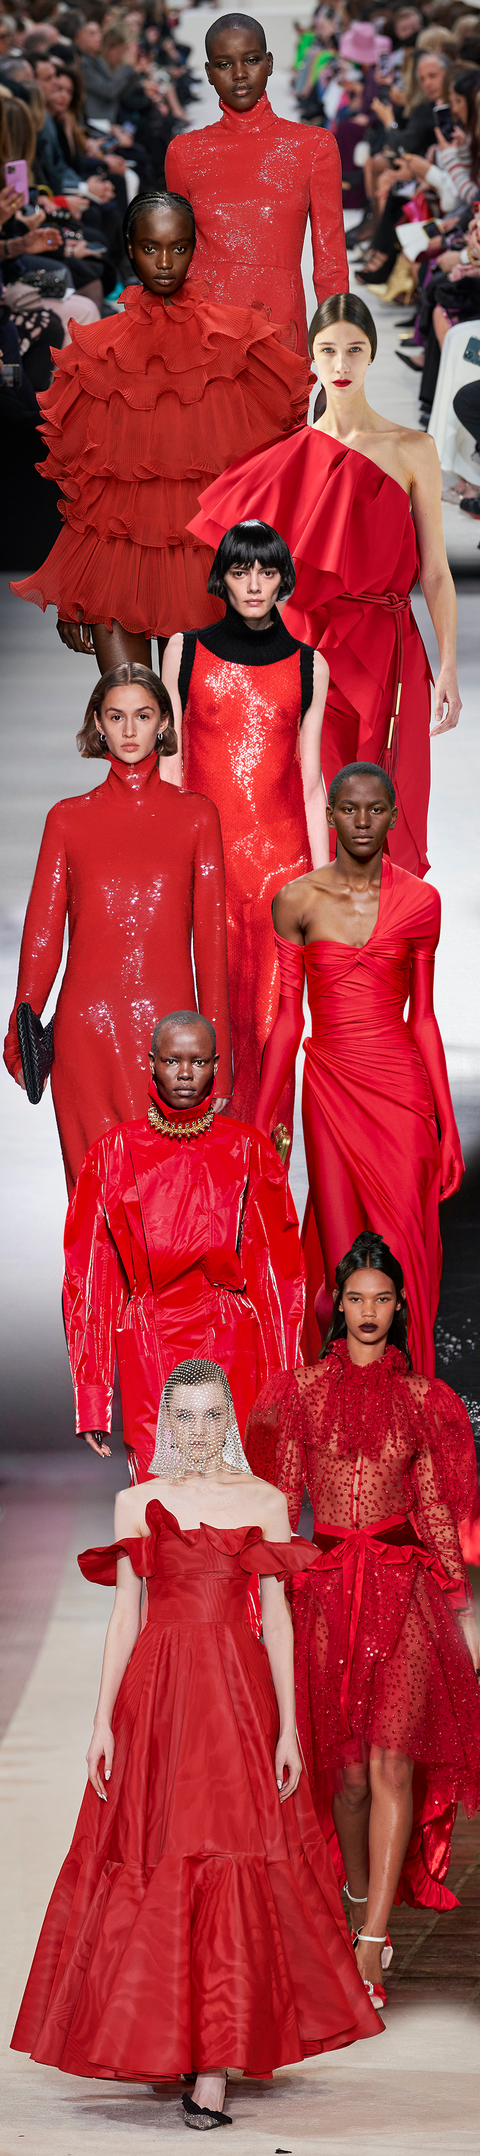 Red, Fashion model, Fashion, Clothing, Haute couture, Fashion design, Dress, Fashion show, Event, Runway,